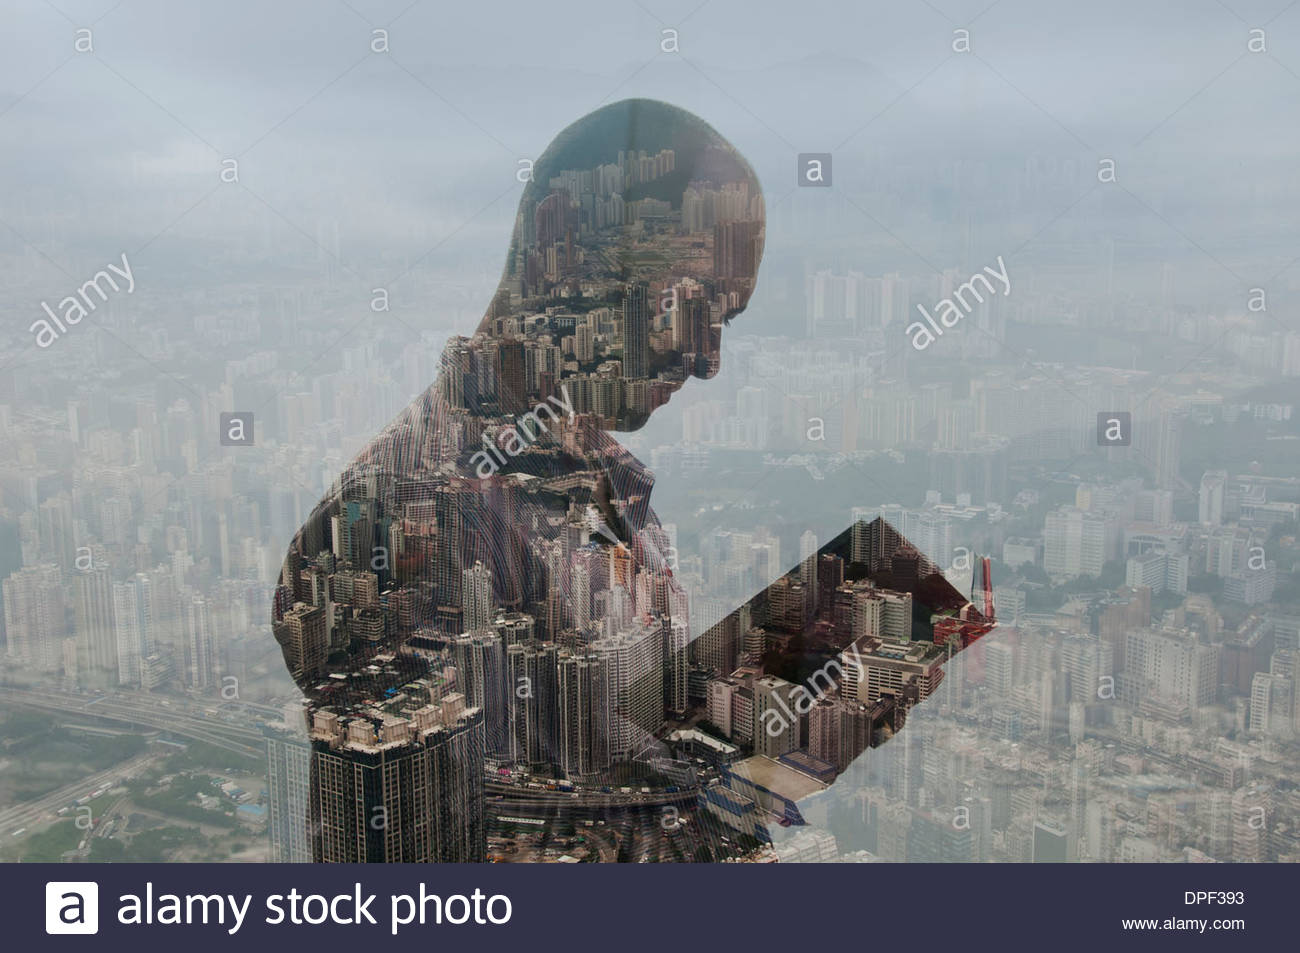 Businessman holding diary and Hong Kong cityscape, composite image - Stock Image